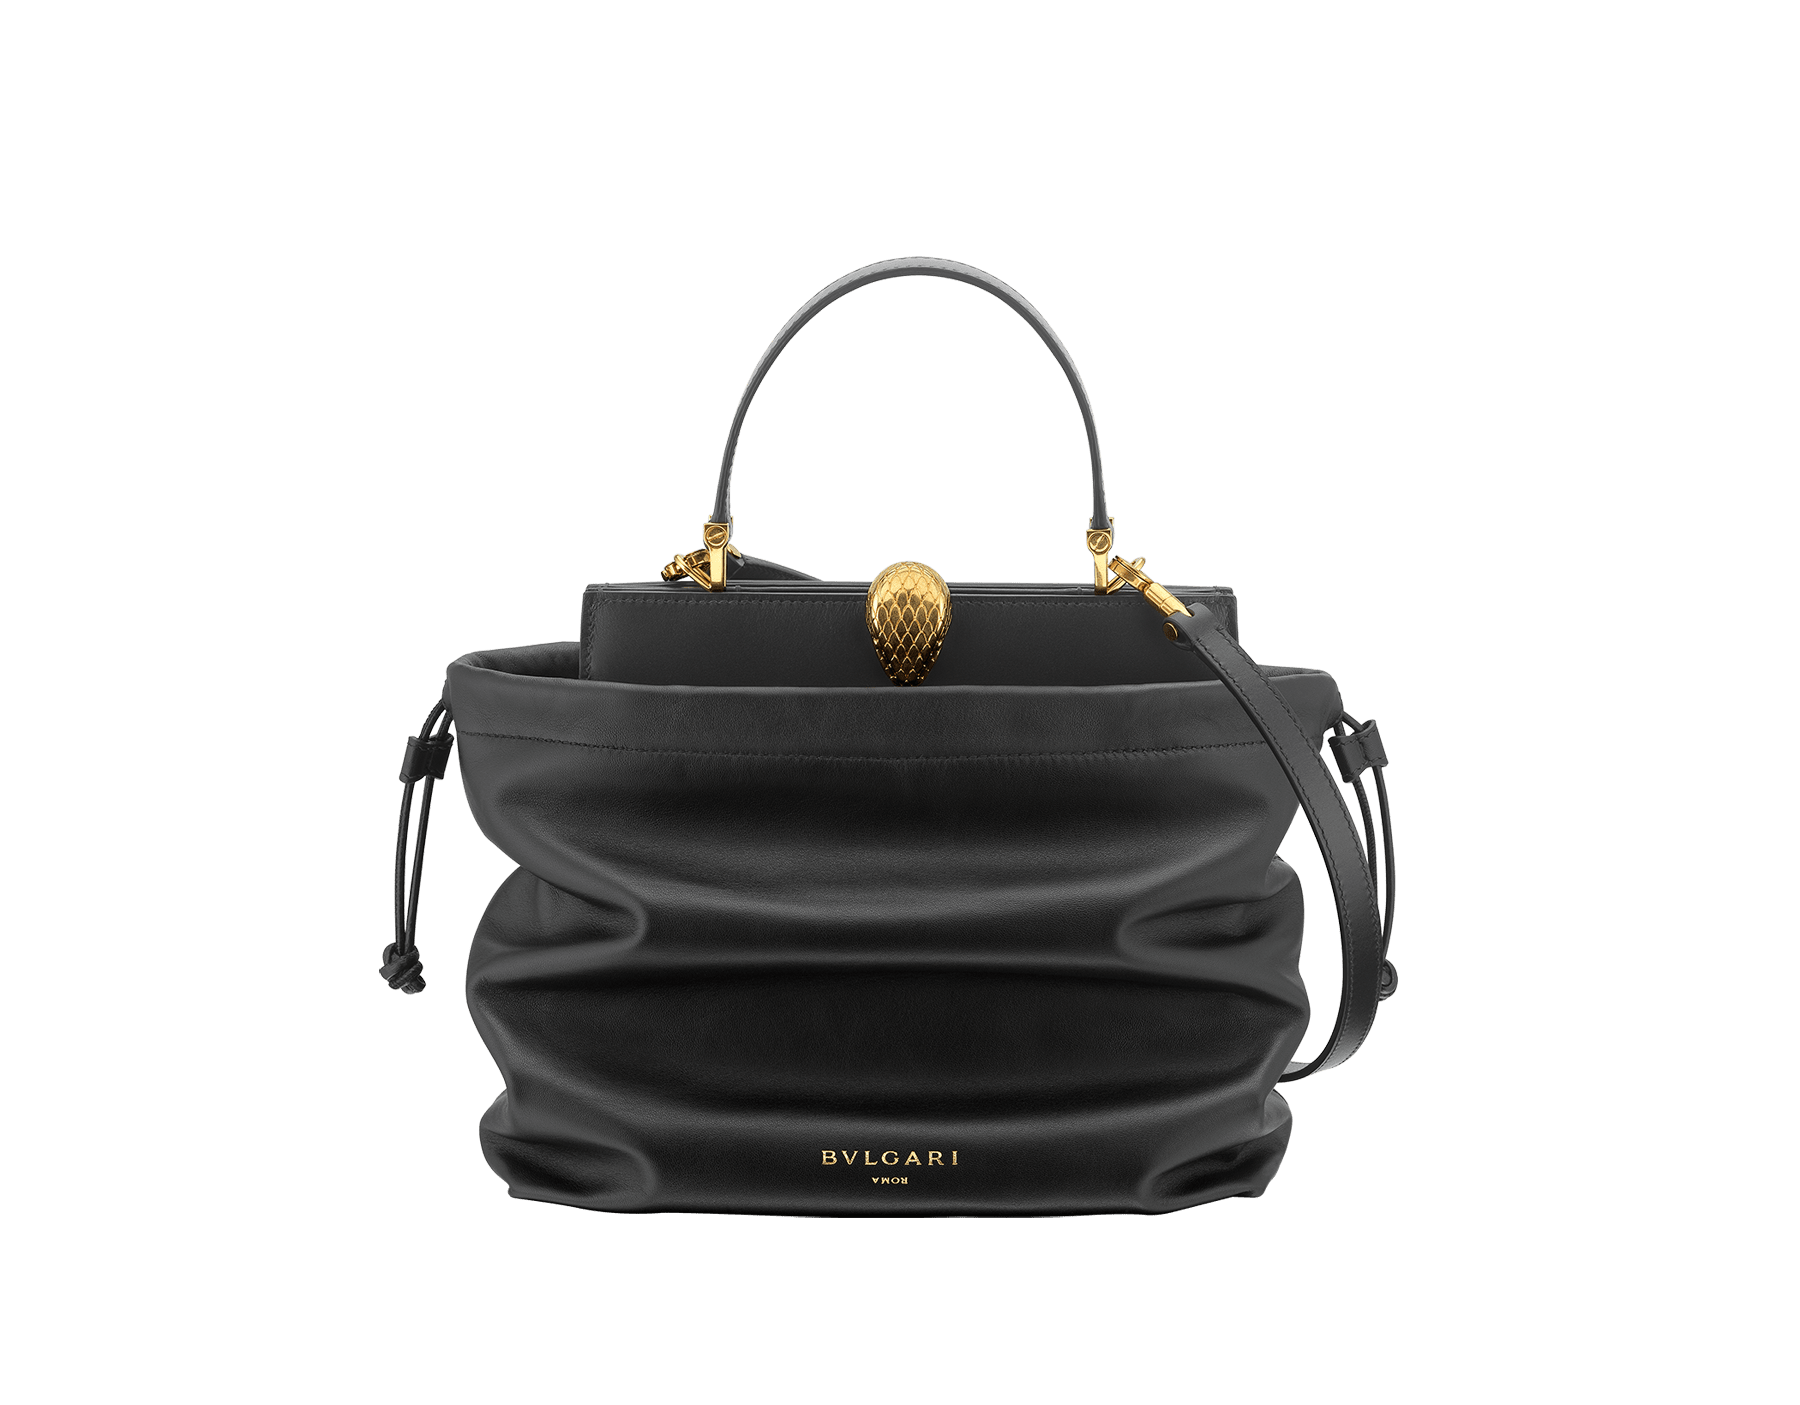 Alexander Wang x Bvlgari 2 in 1 satchel bag in black calf leather with black lambskin drawstring dust bag exterior. New Serpenti head closure in antique gold plated brass with tempting red enamel eyes. Limited edition. 288747 image 1